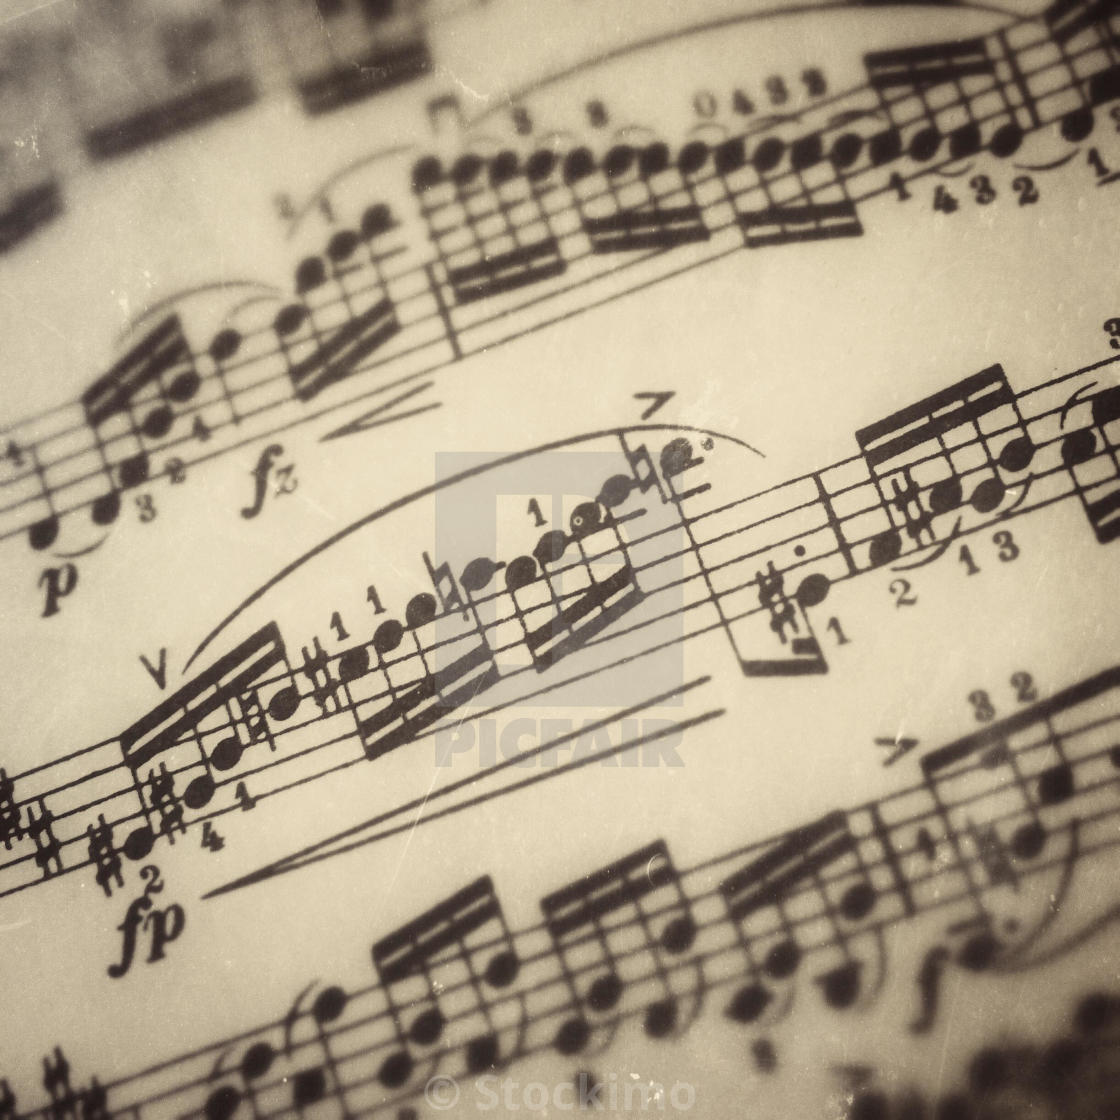 Close-up of a page of violin music  - License, download or print for